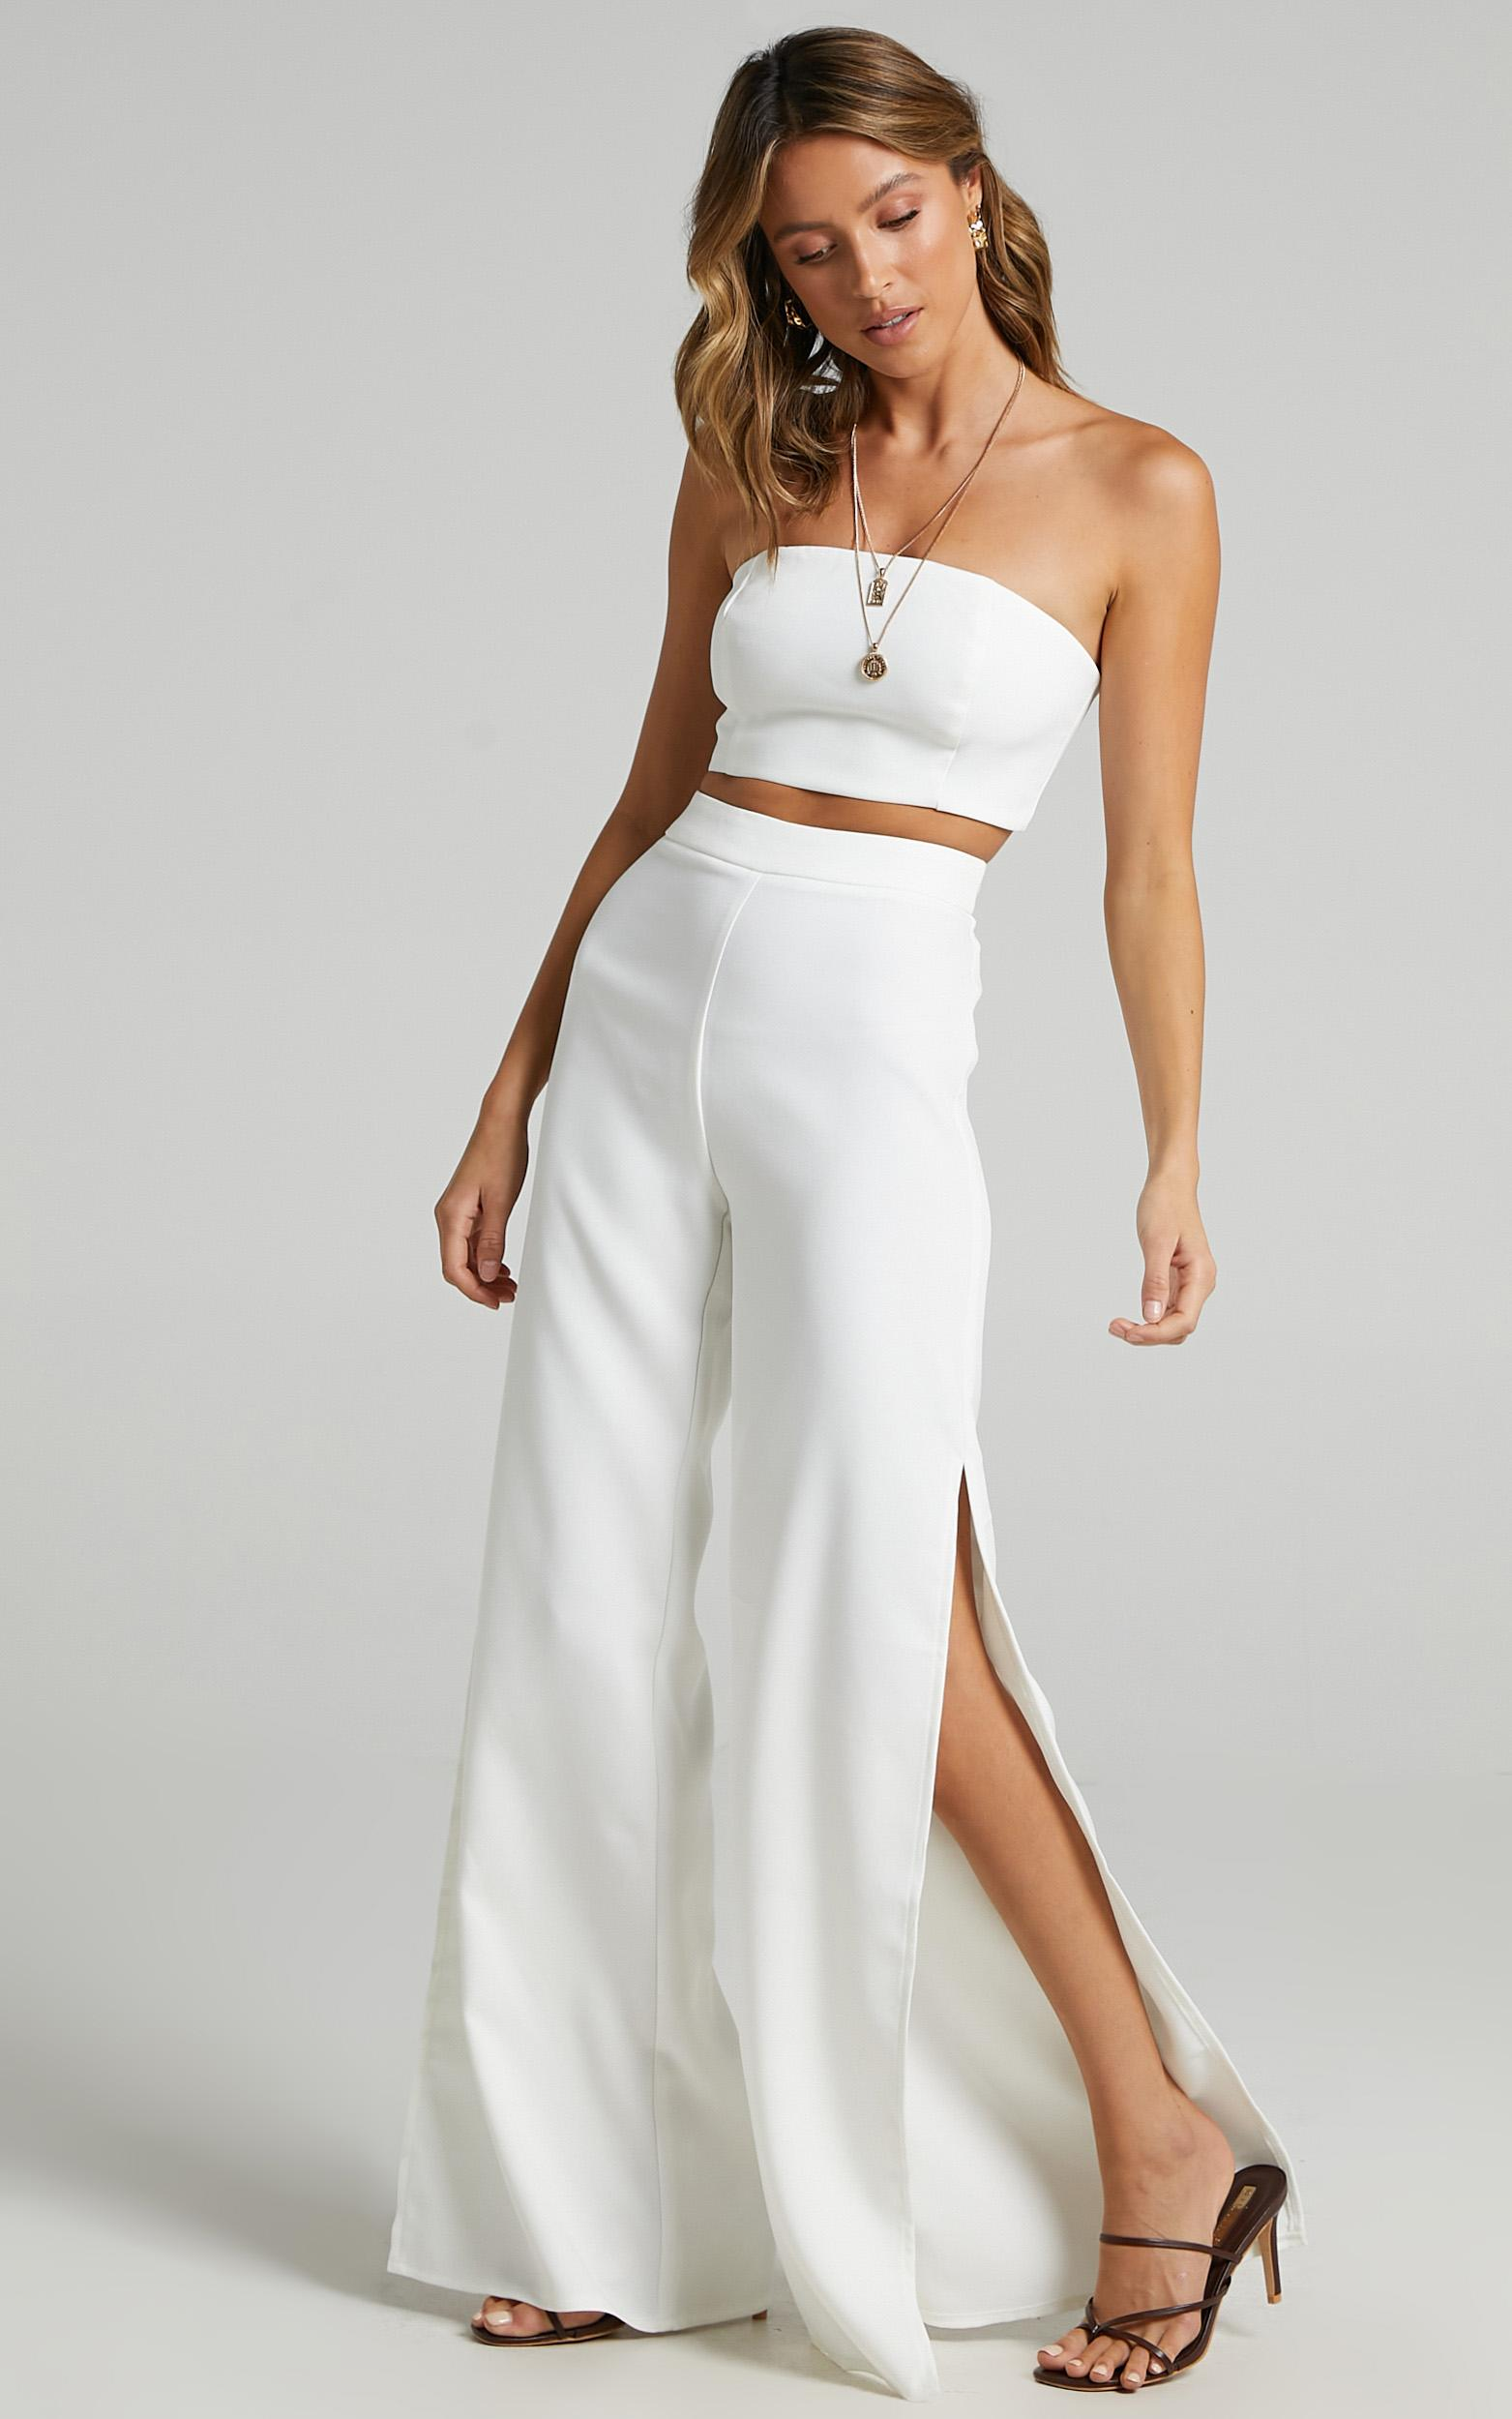 Im The One Two Piece Set in White - 08, WHT8, hi-res image number null